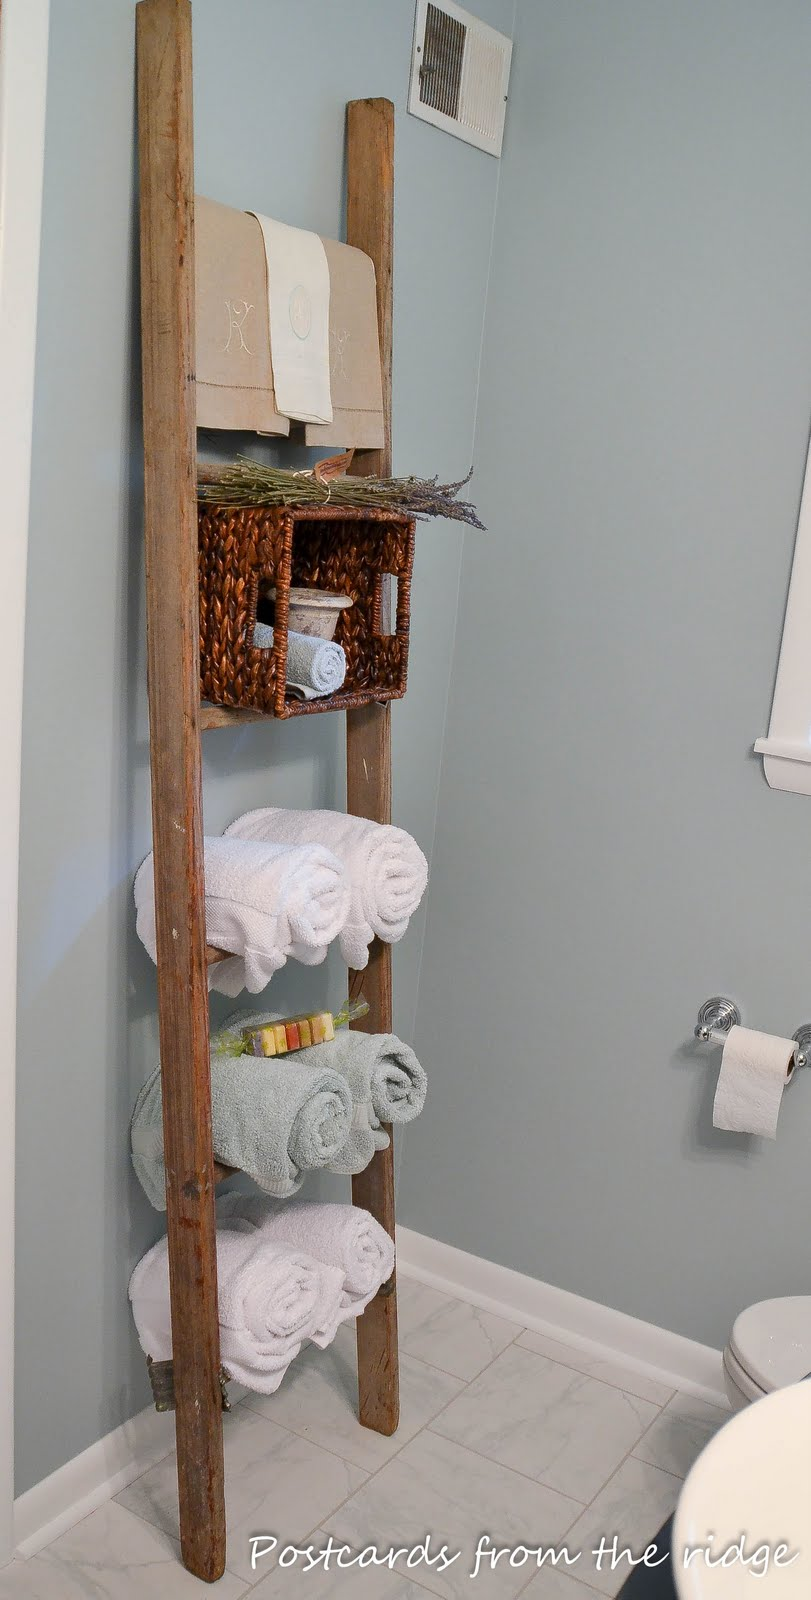 old ladder used for towel storage in bathroom